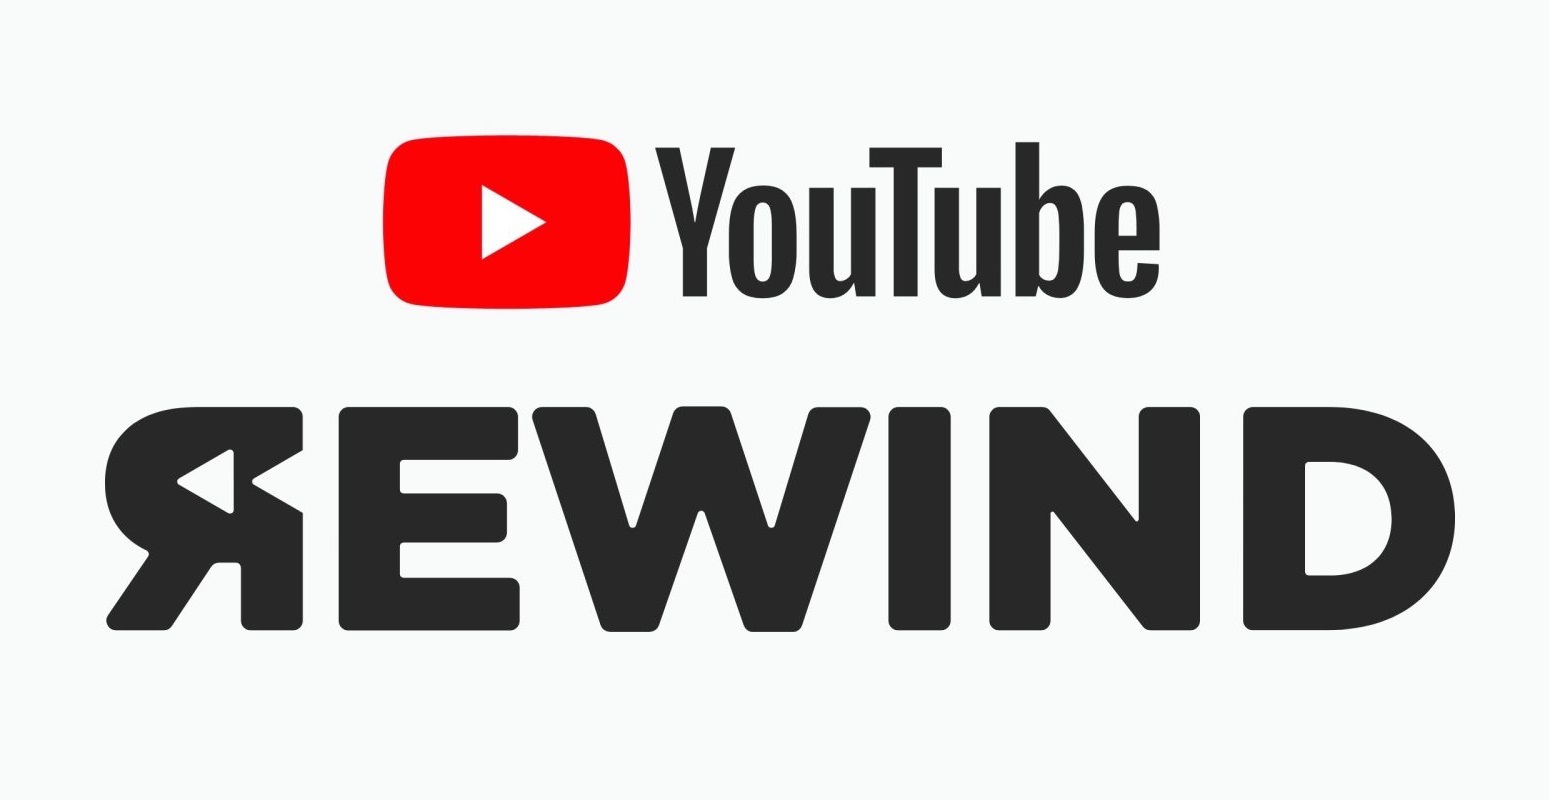 YouTube Rewind 2020 Not Happenning